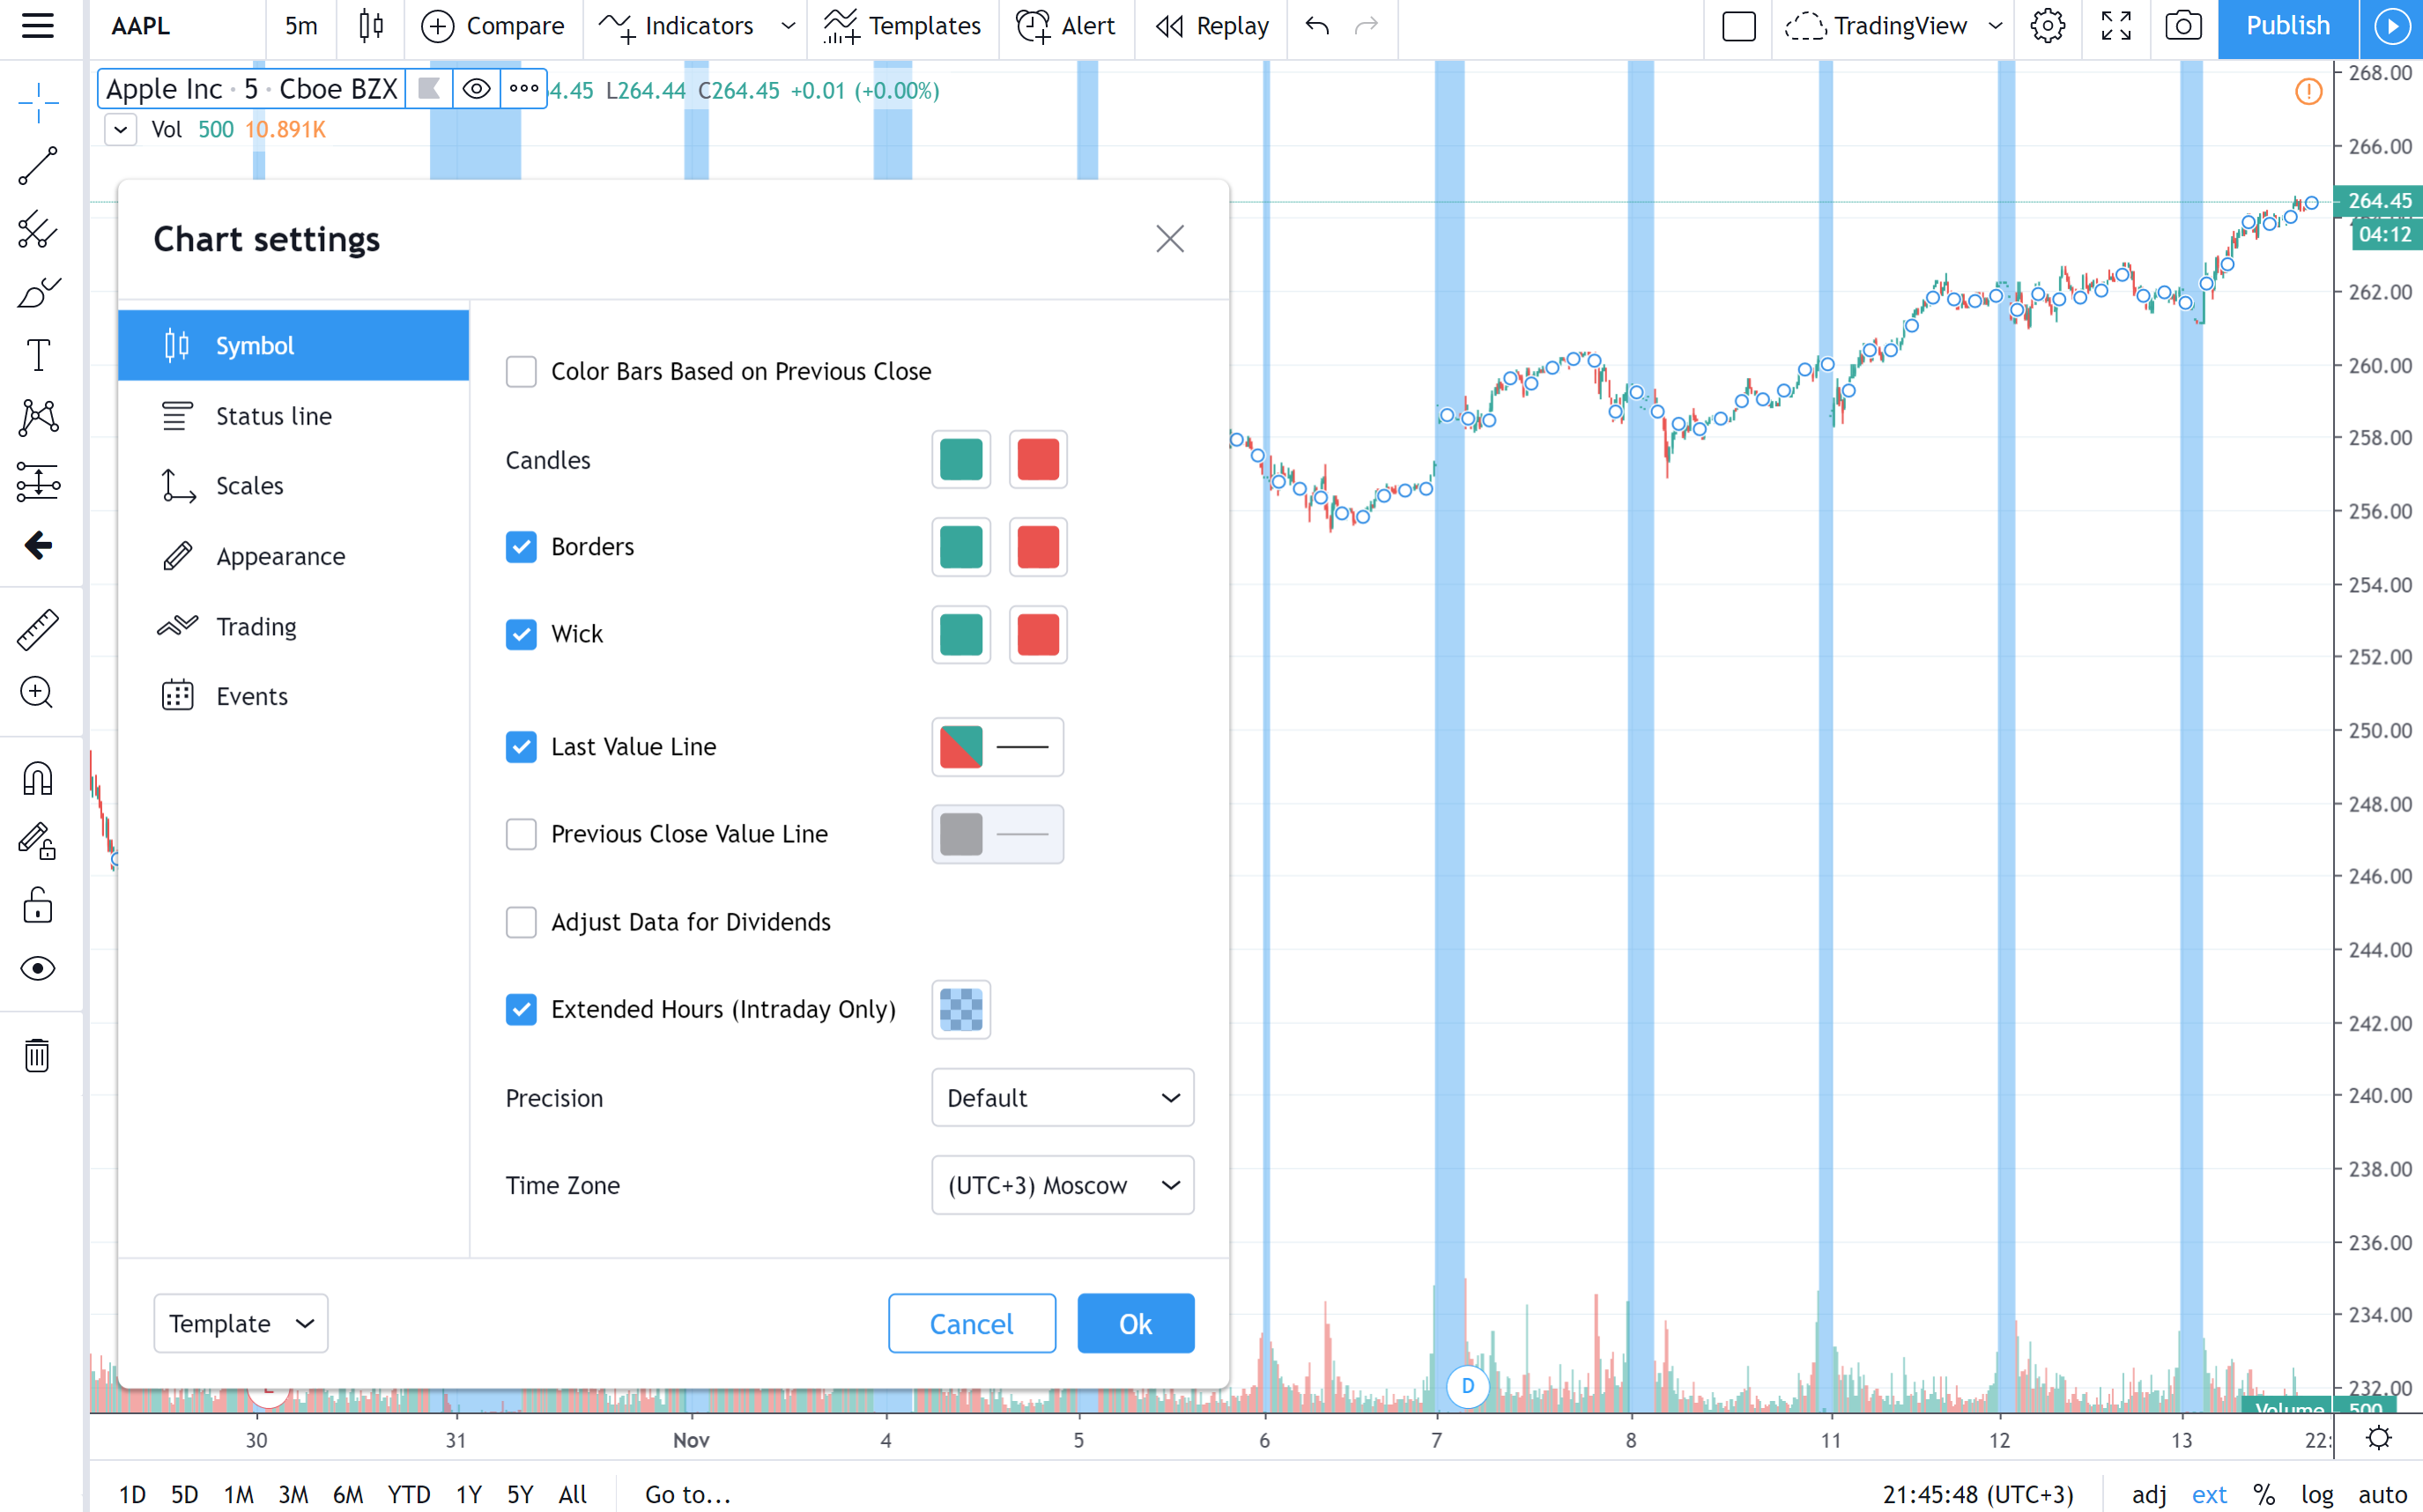 create a cryptocurrency index ticker trading view